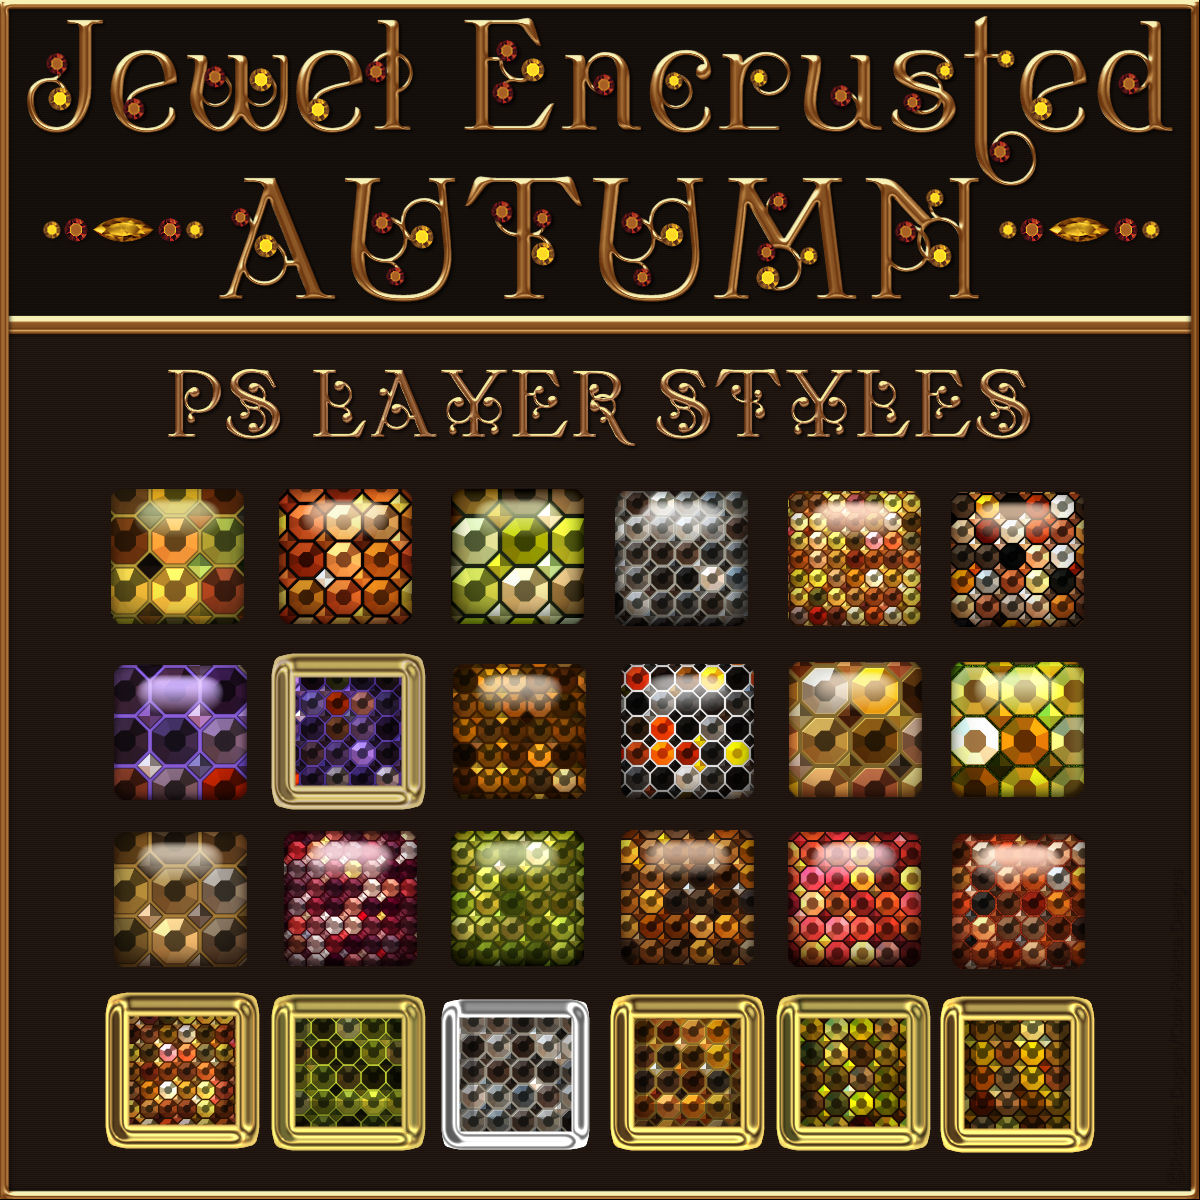 Jewel Encrusted Autumn PS Layer Styles